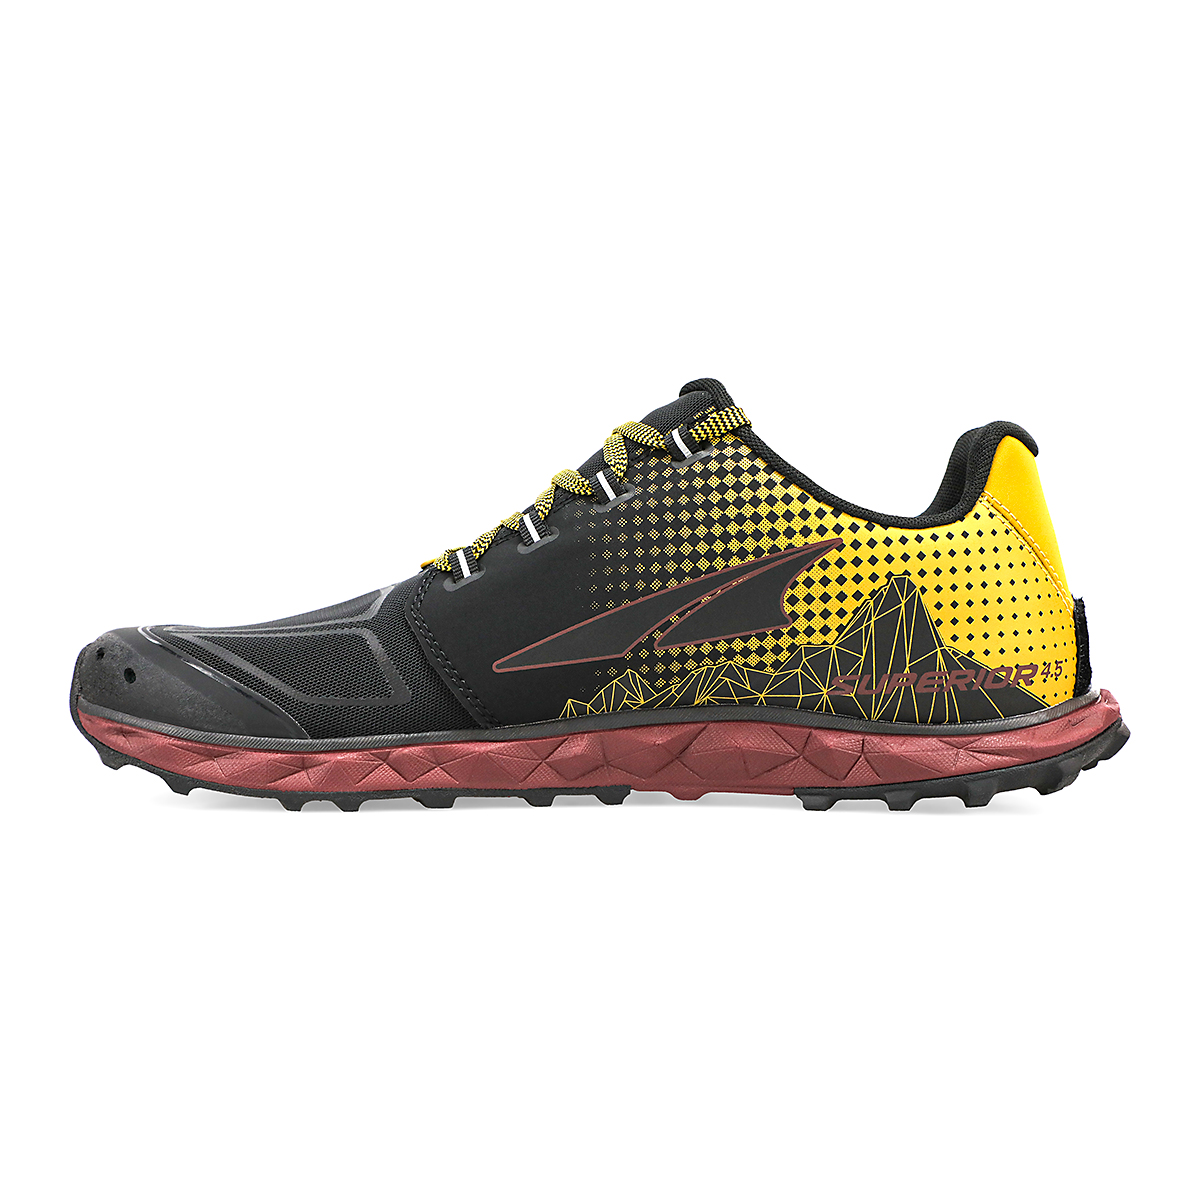 Men's Altra Superior 4.5 Trail Running Shoe - Color: Yellow/Port - Size: 7 - Width: Regular, Yellow/Port, large, image 2